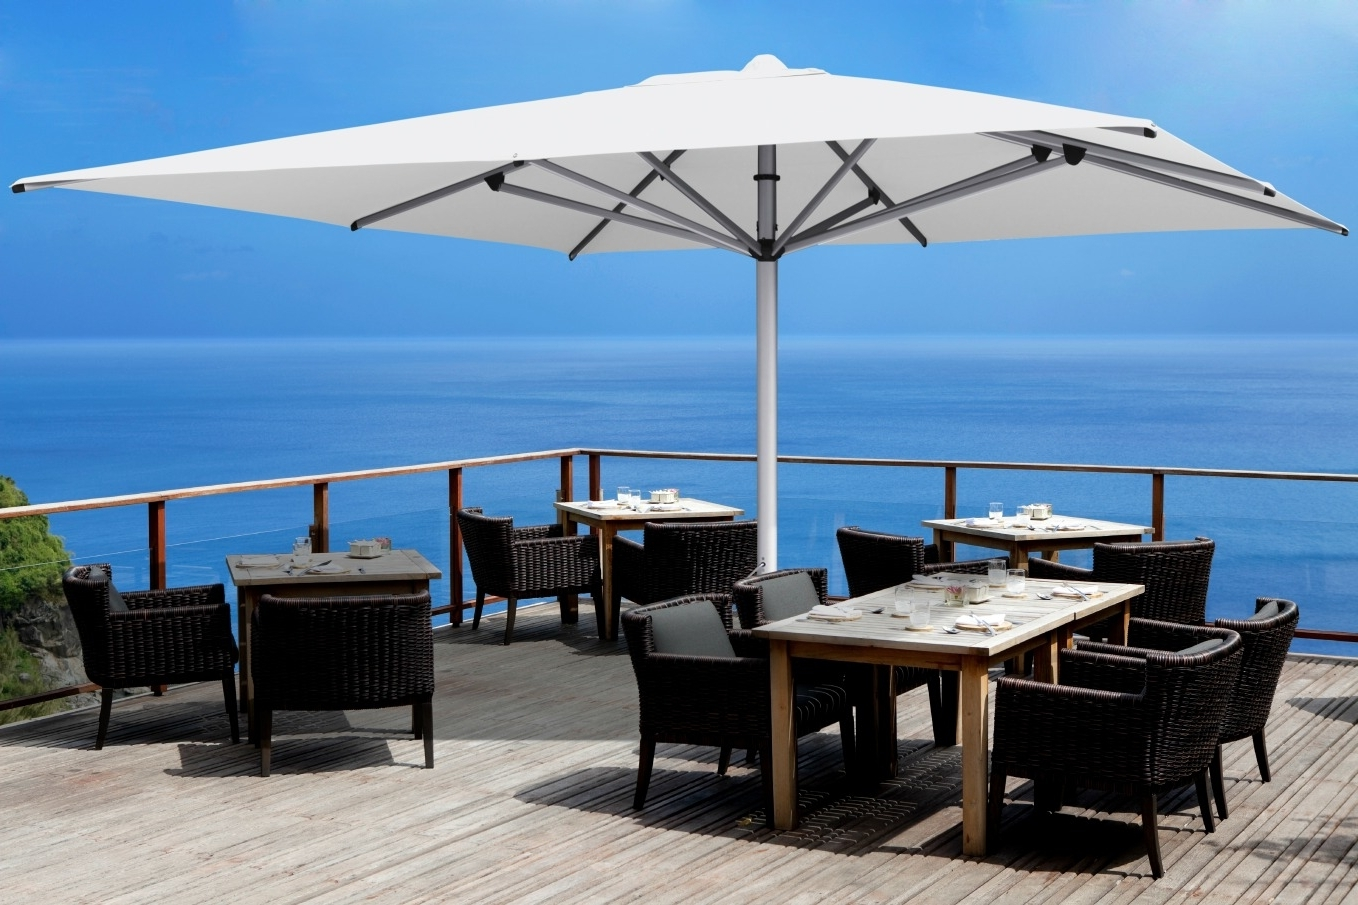 Famous Shadowspec Luxury Umbrella Systems: 5 Reasons Why Commercial Outdoor Regarding Extended Patio Umbrellas (View 9 of 20)